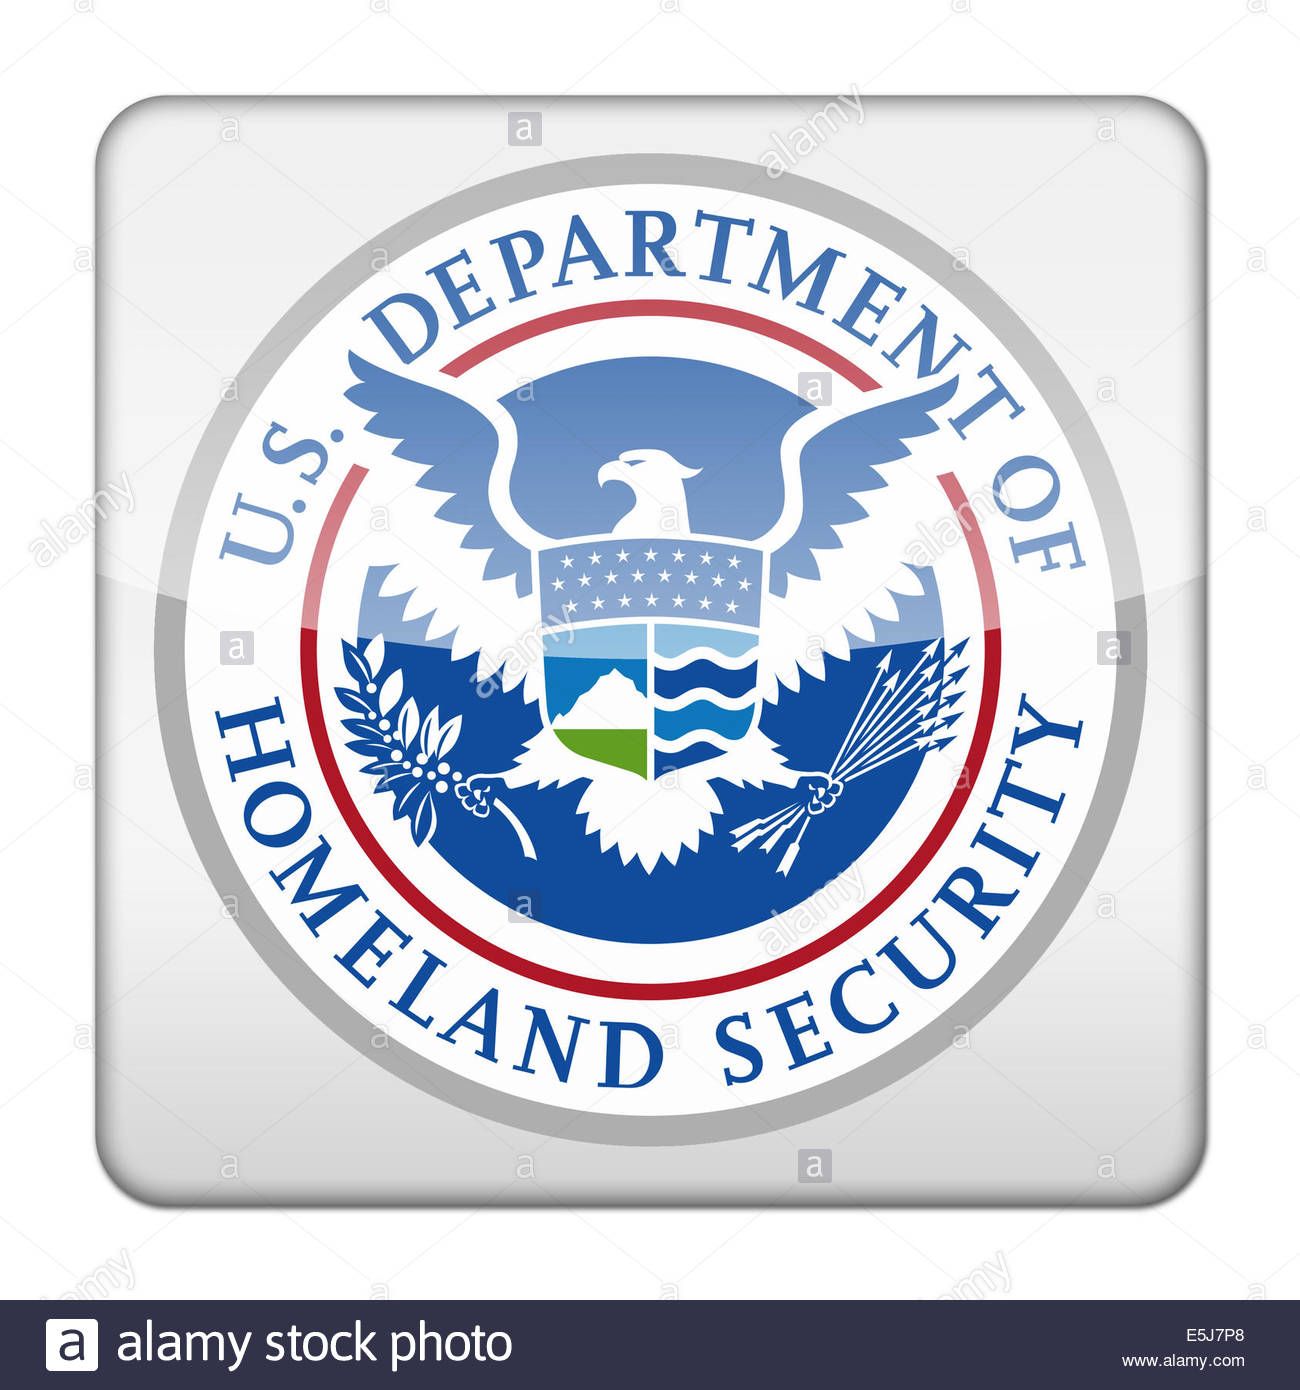 United States Department of Homeland Security logo icon isolated app button - Stock Image